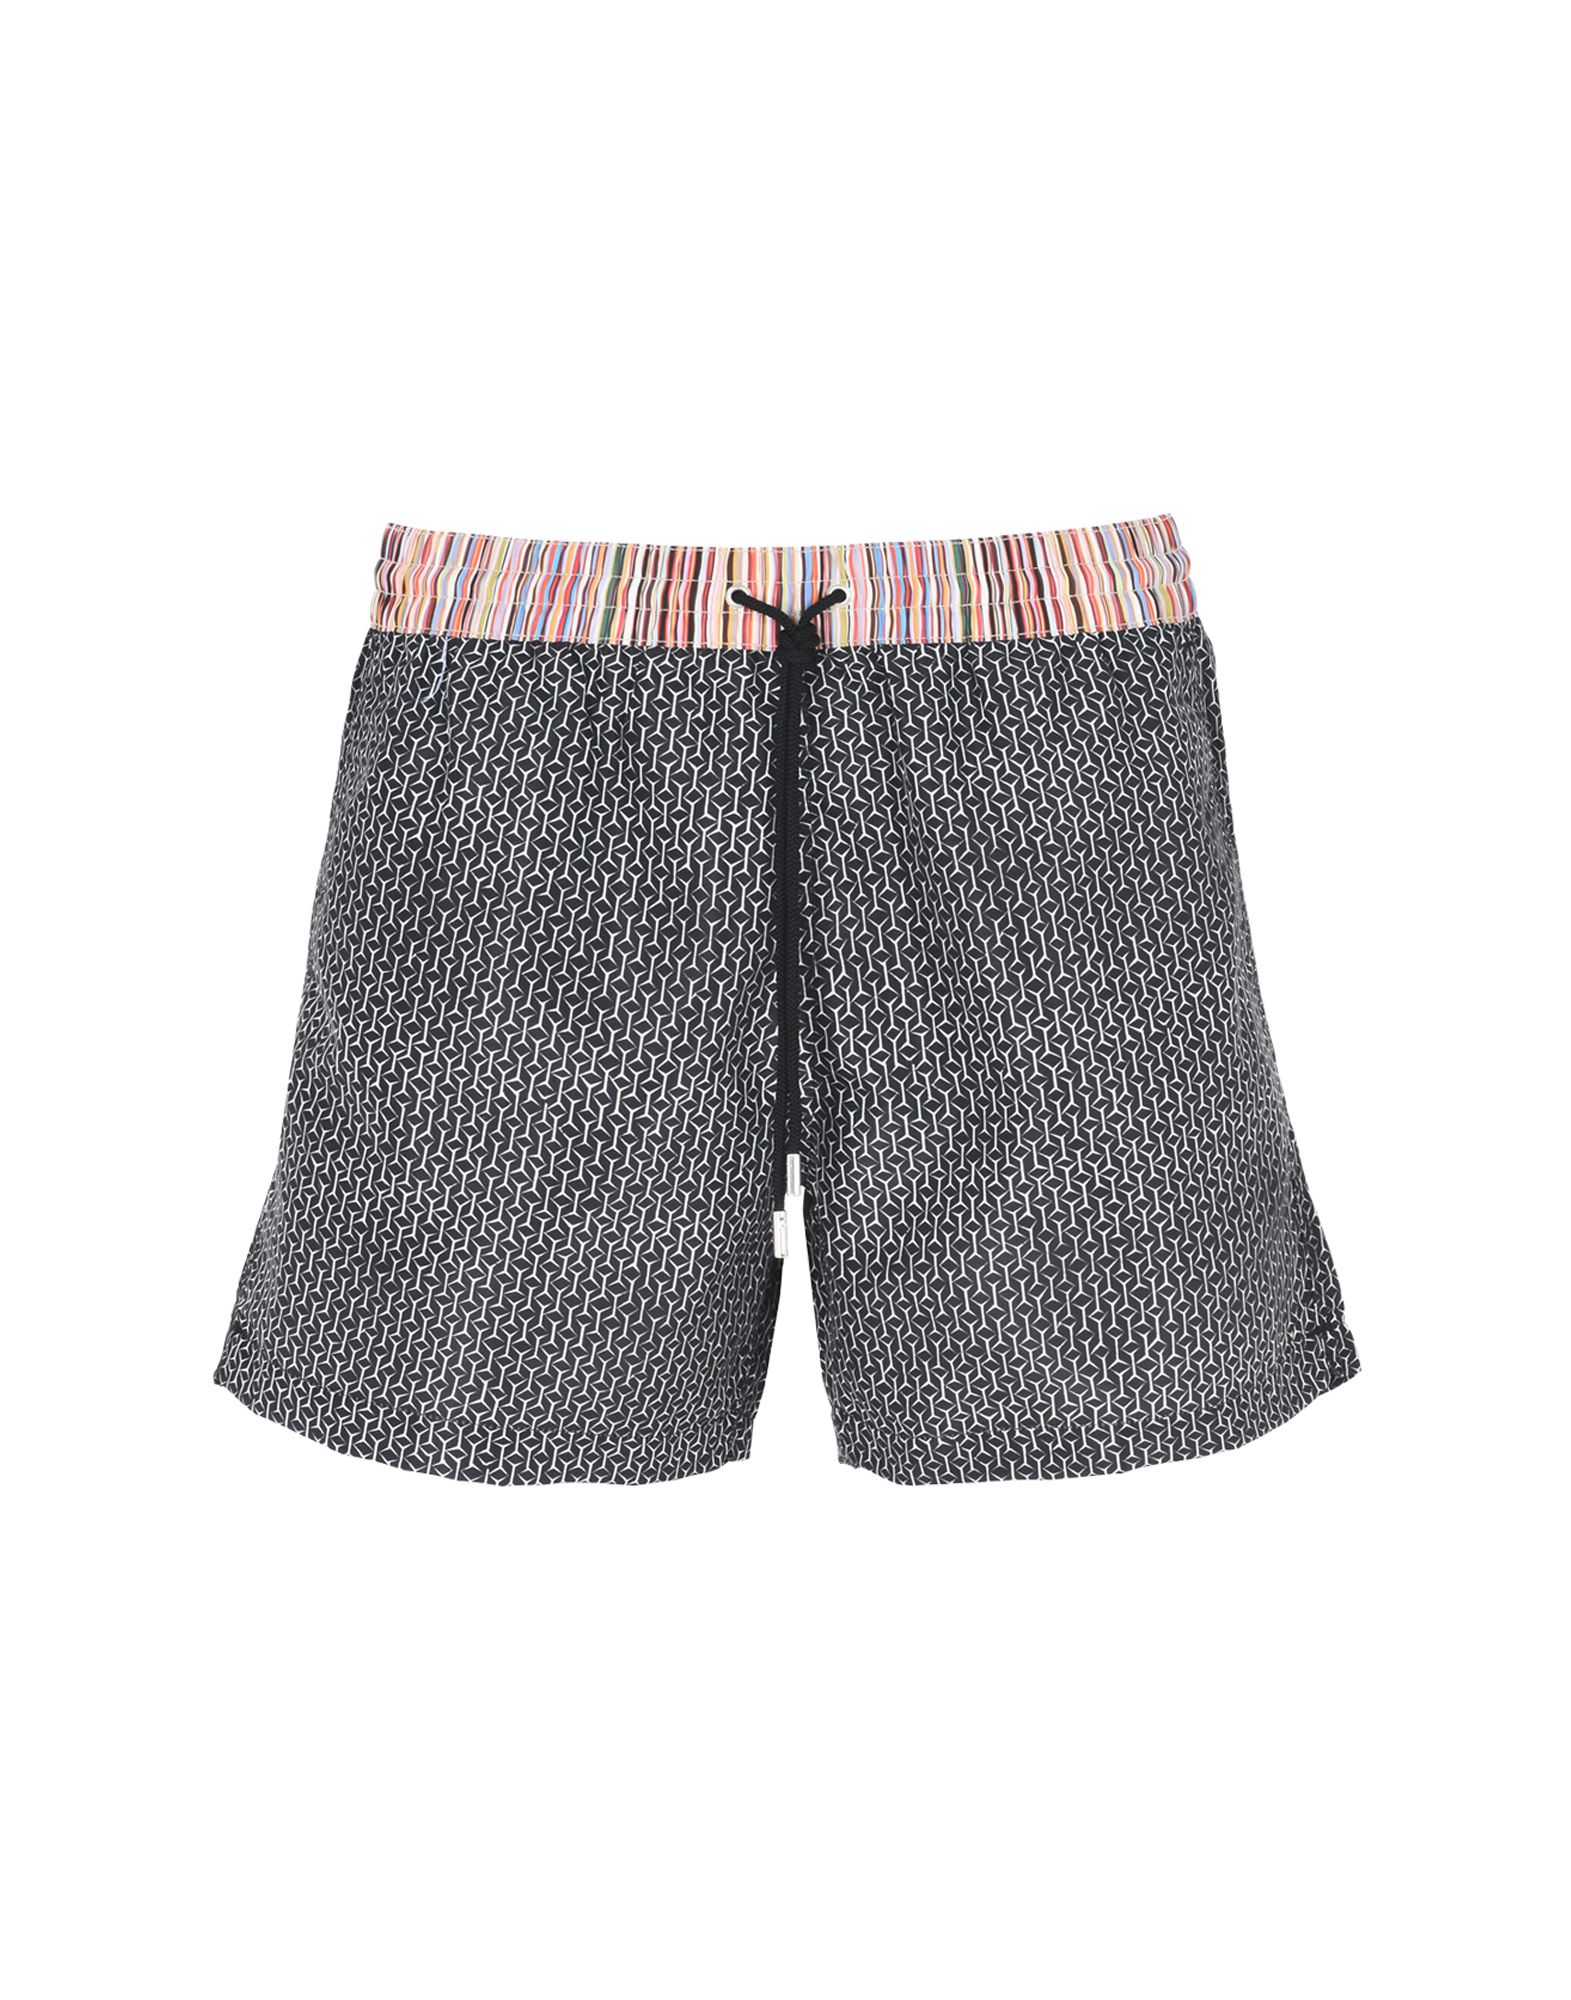 PAUL SMITH SWIMWEAR Шорты для плавания smith